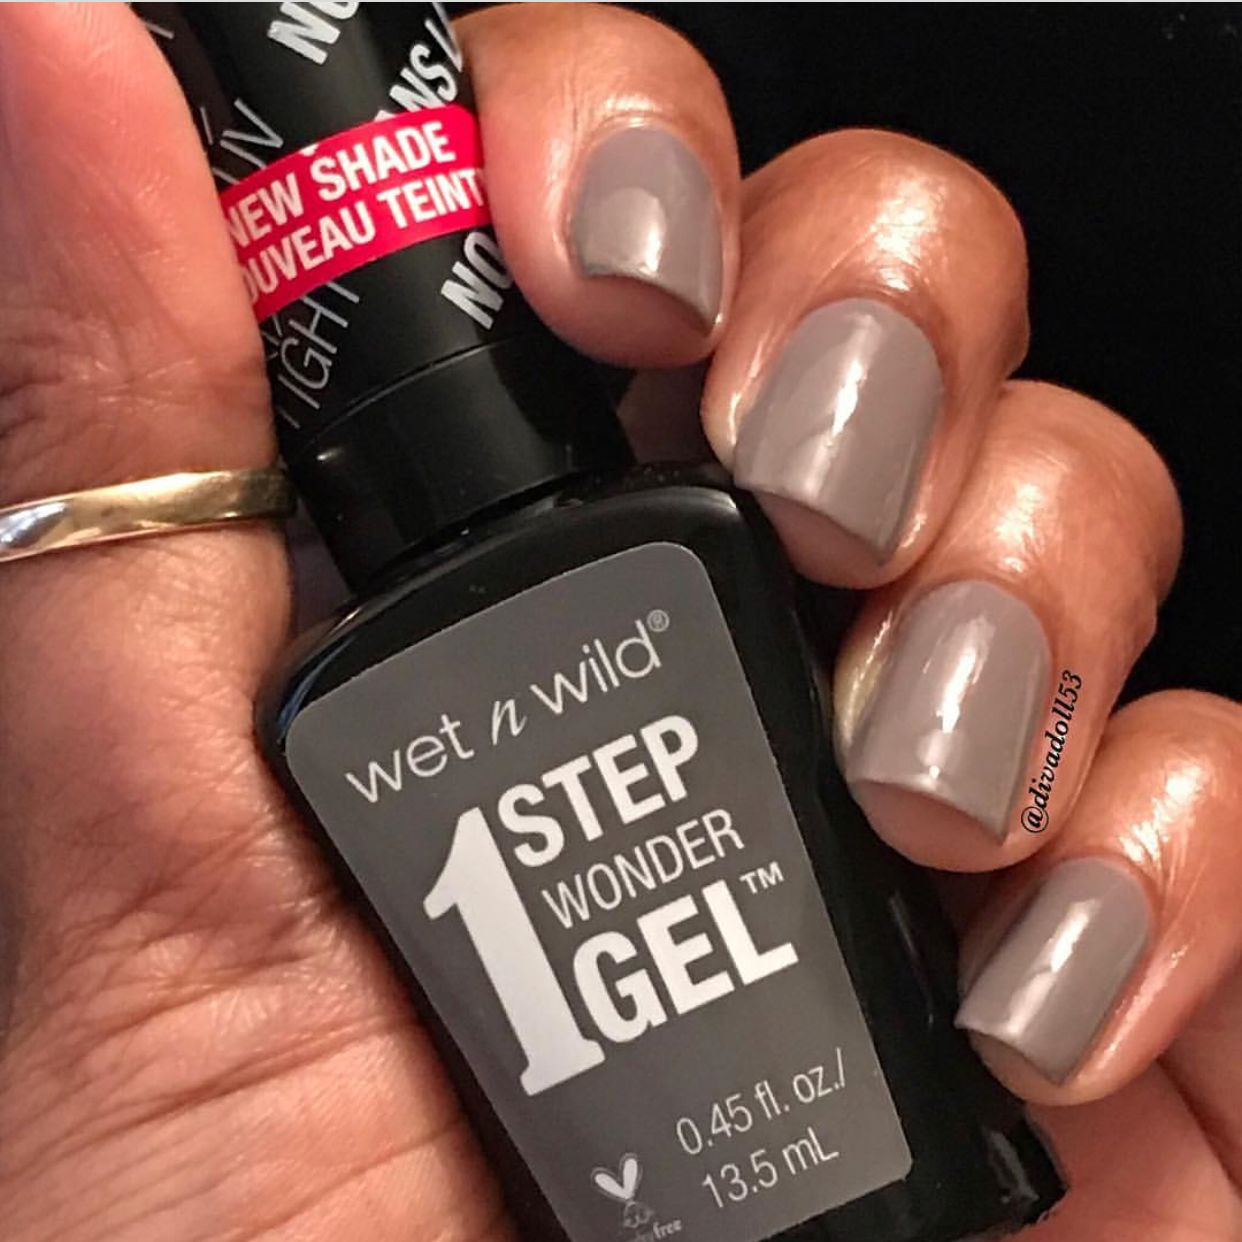 Taupe As A Joke By Wet N Wild Nail Polish Swatch Nail Polish On Dark Skin Nail Polish Skin Polish Taupe Nail Polish